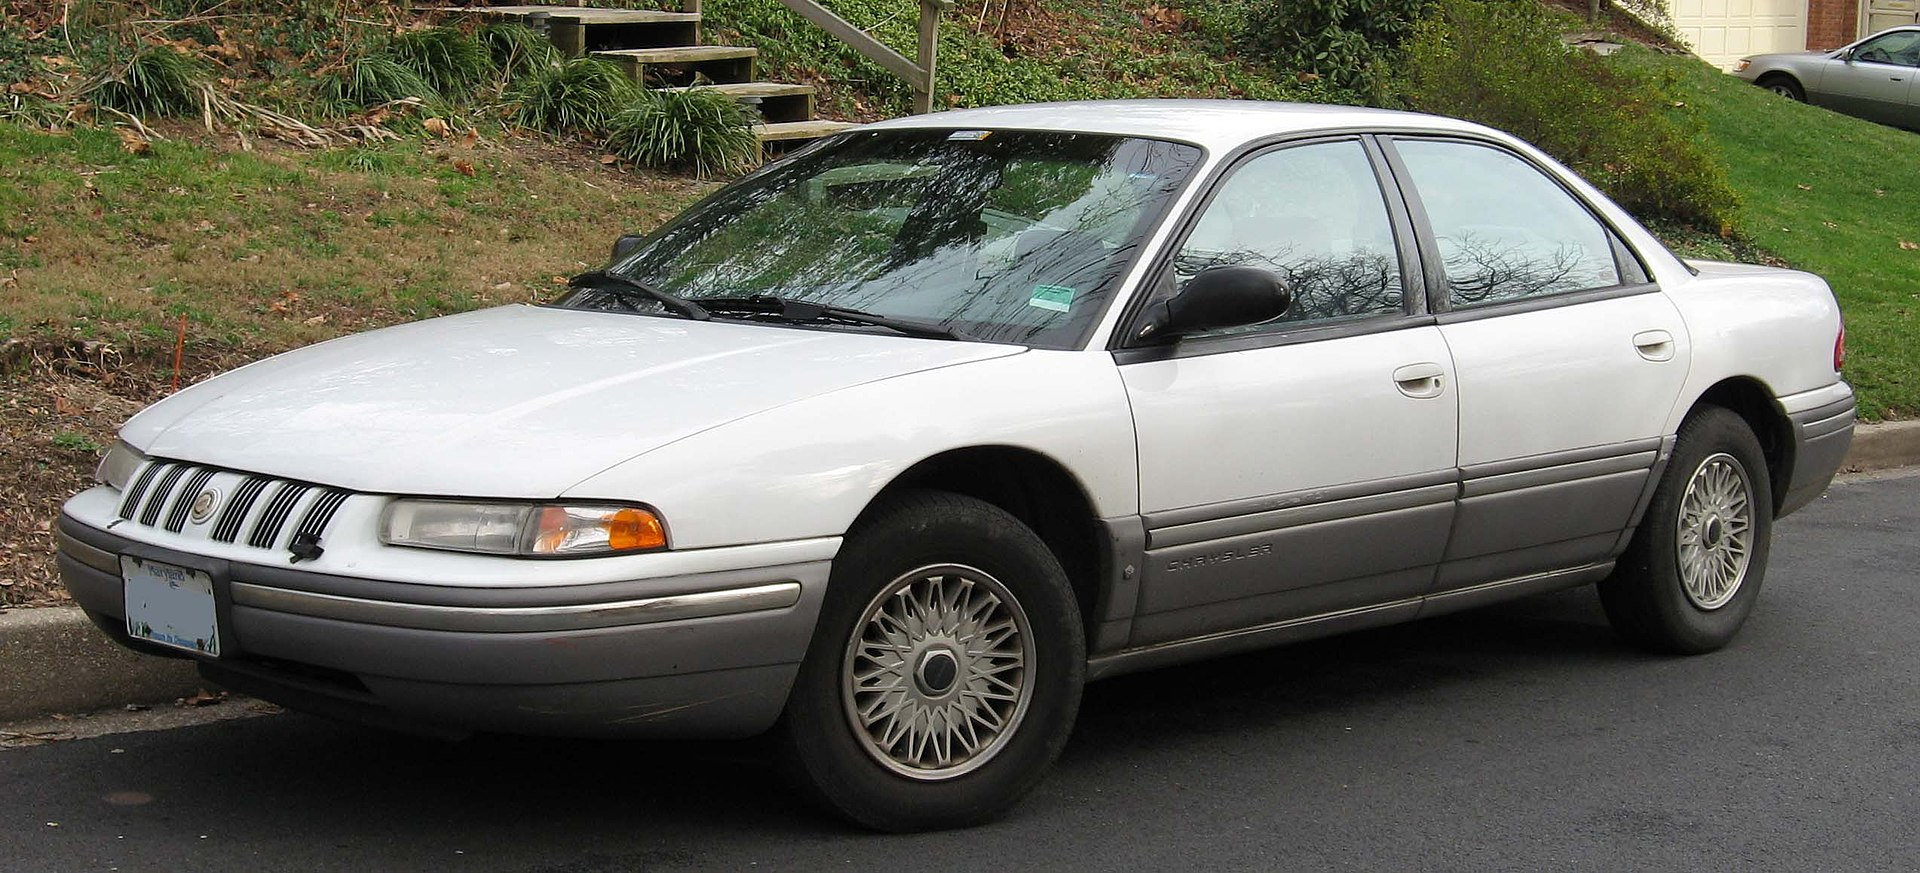 Chrysler Concorde 1